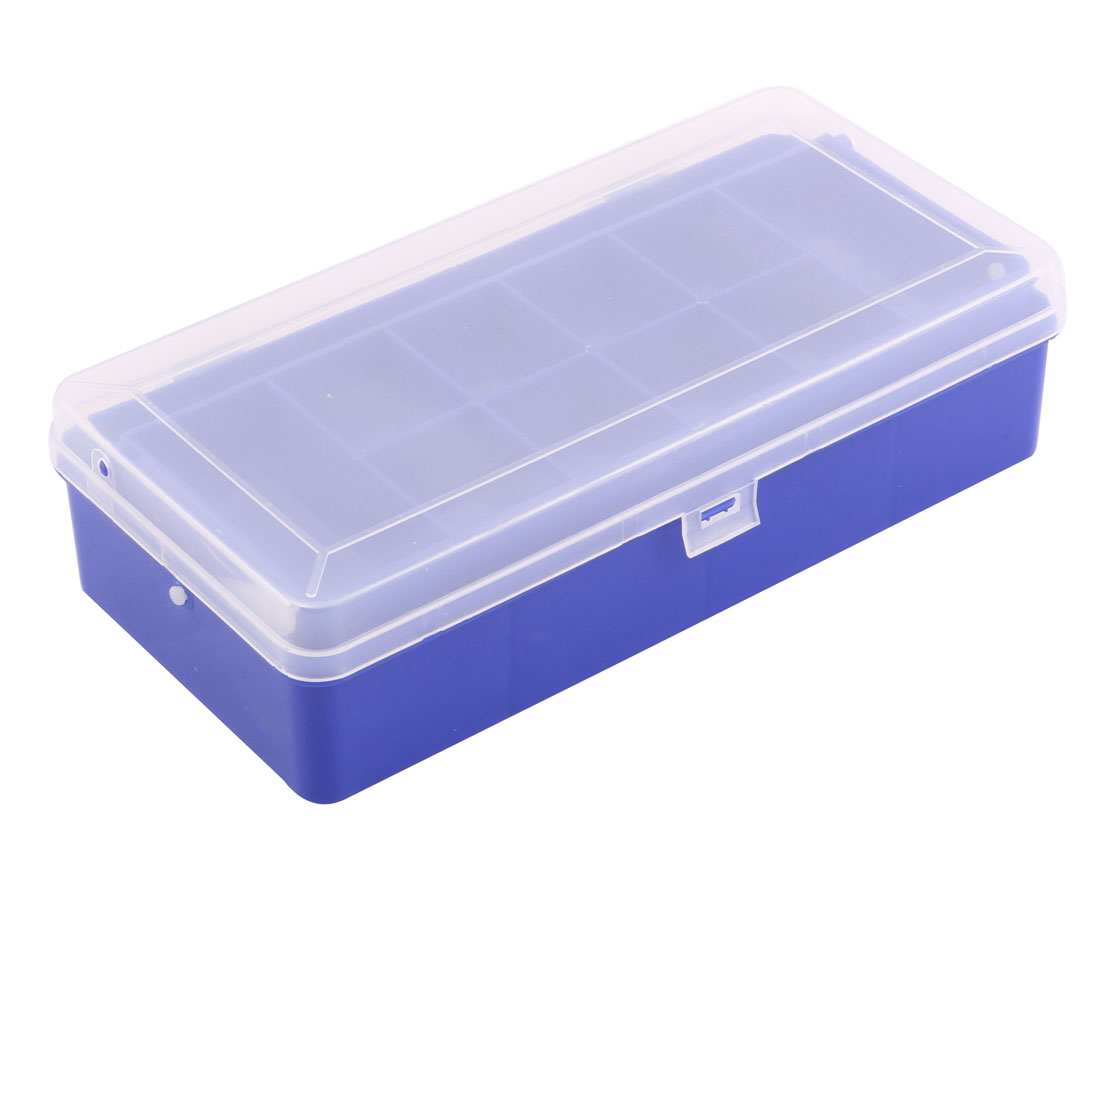 Outdoor Fishing Plastic Double Layers 13 Compartments Lure Container Case Blue Clear